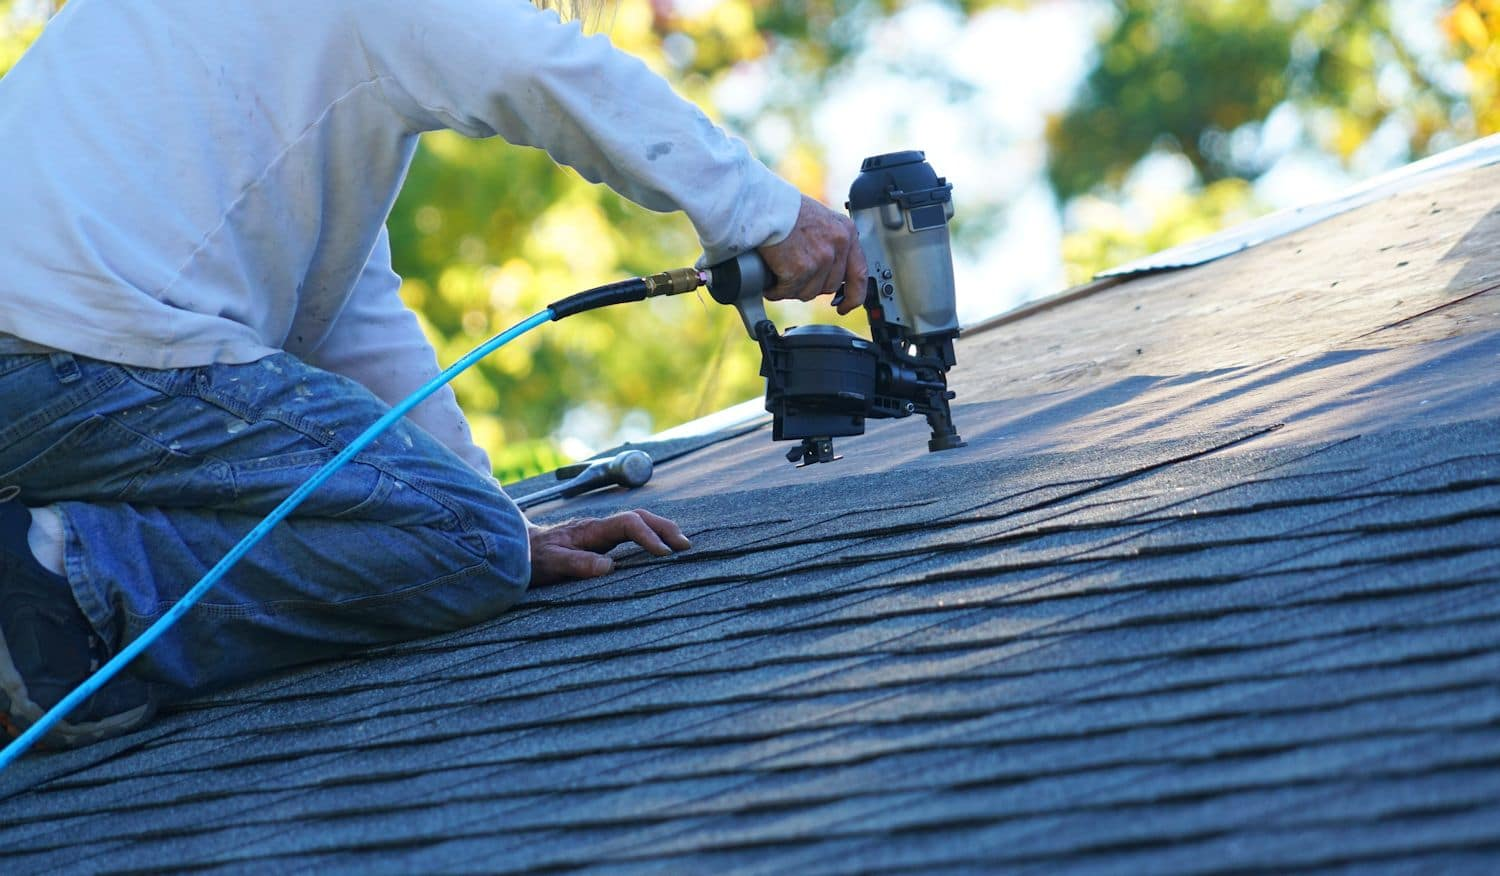 man using nail gun to put shingles on roof